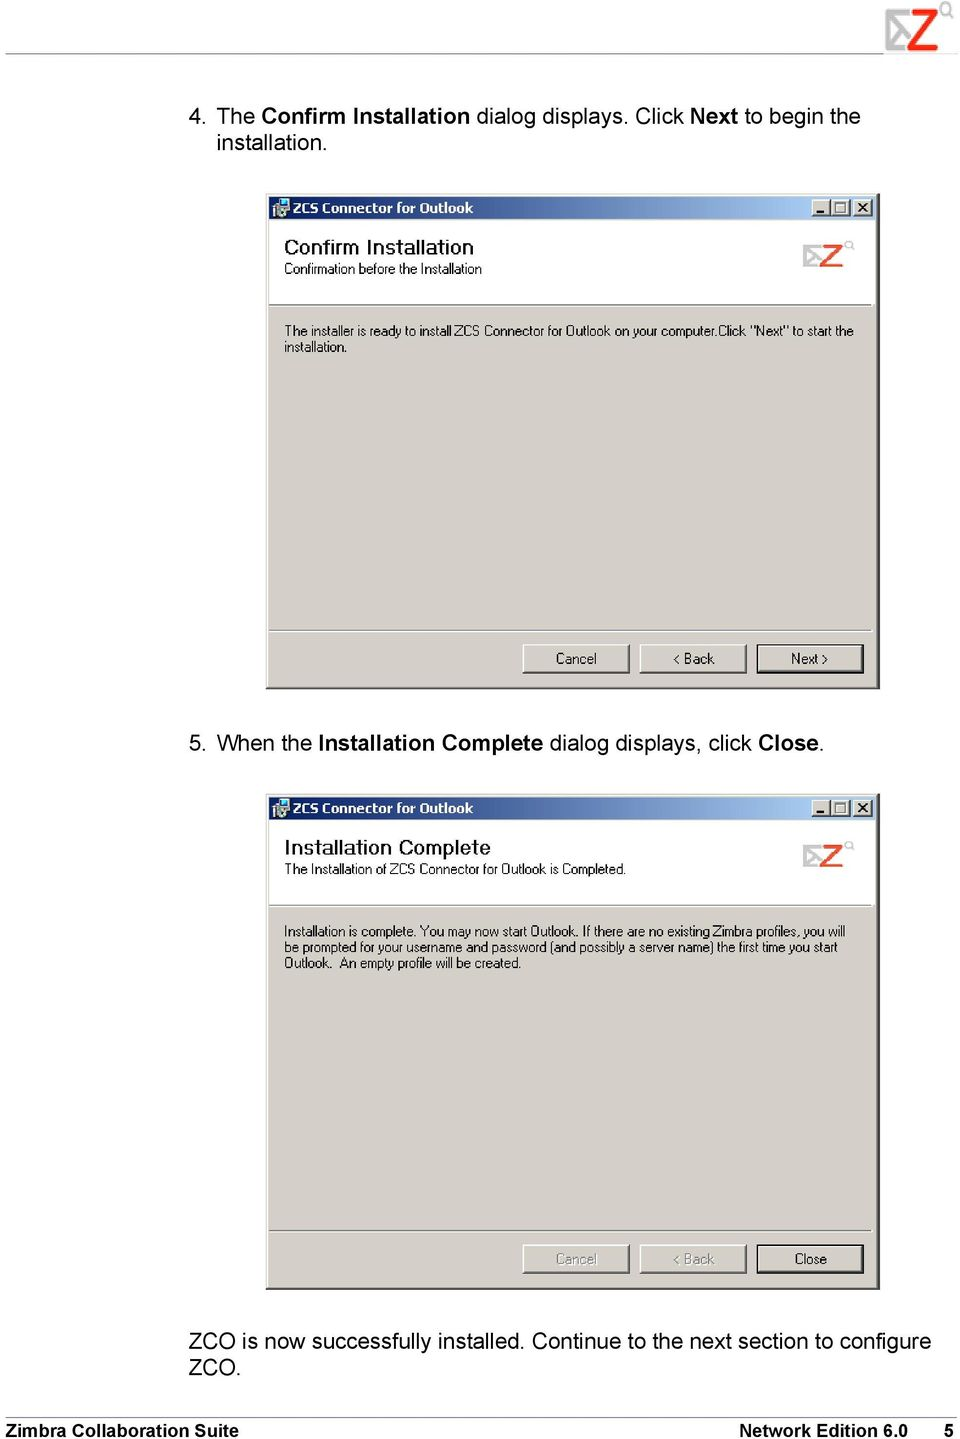 When the Installation Complete dialog displays, click Close.